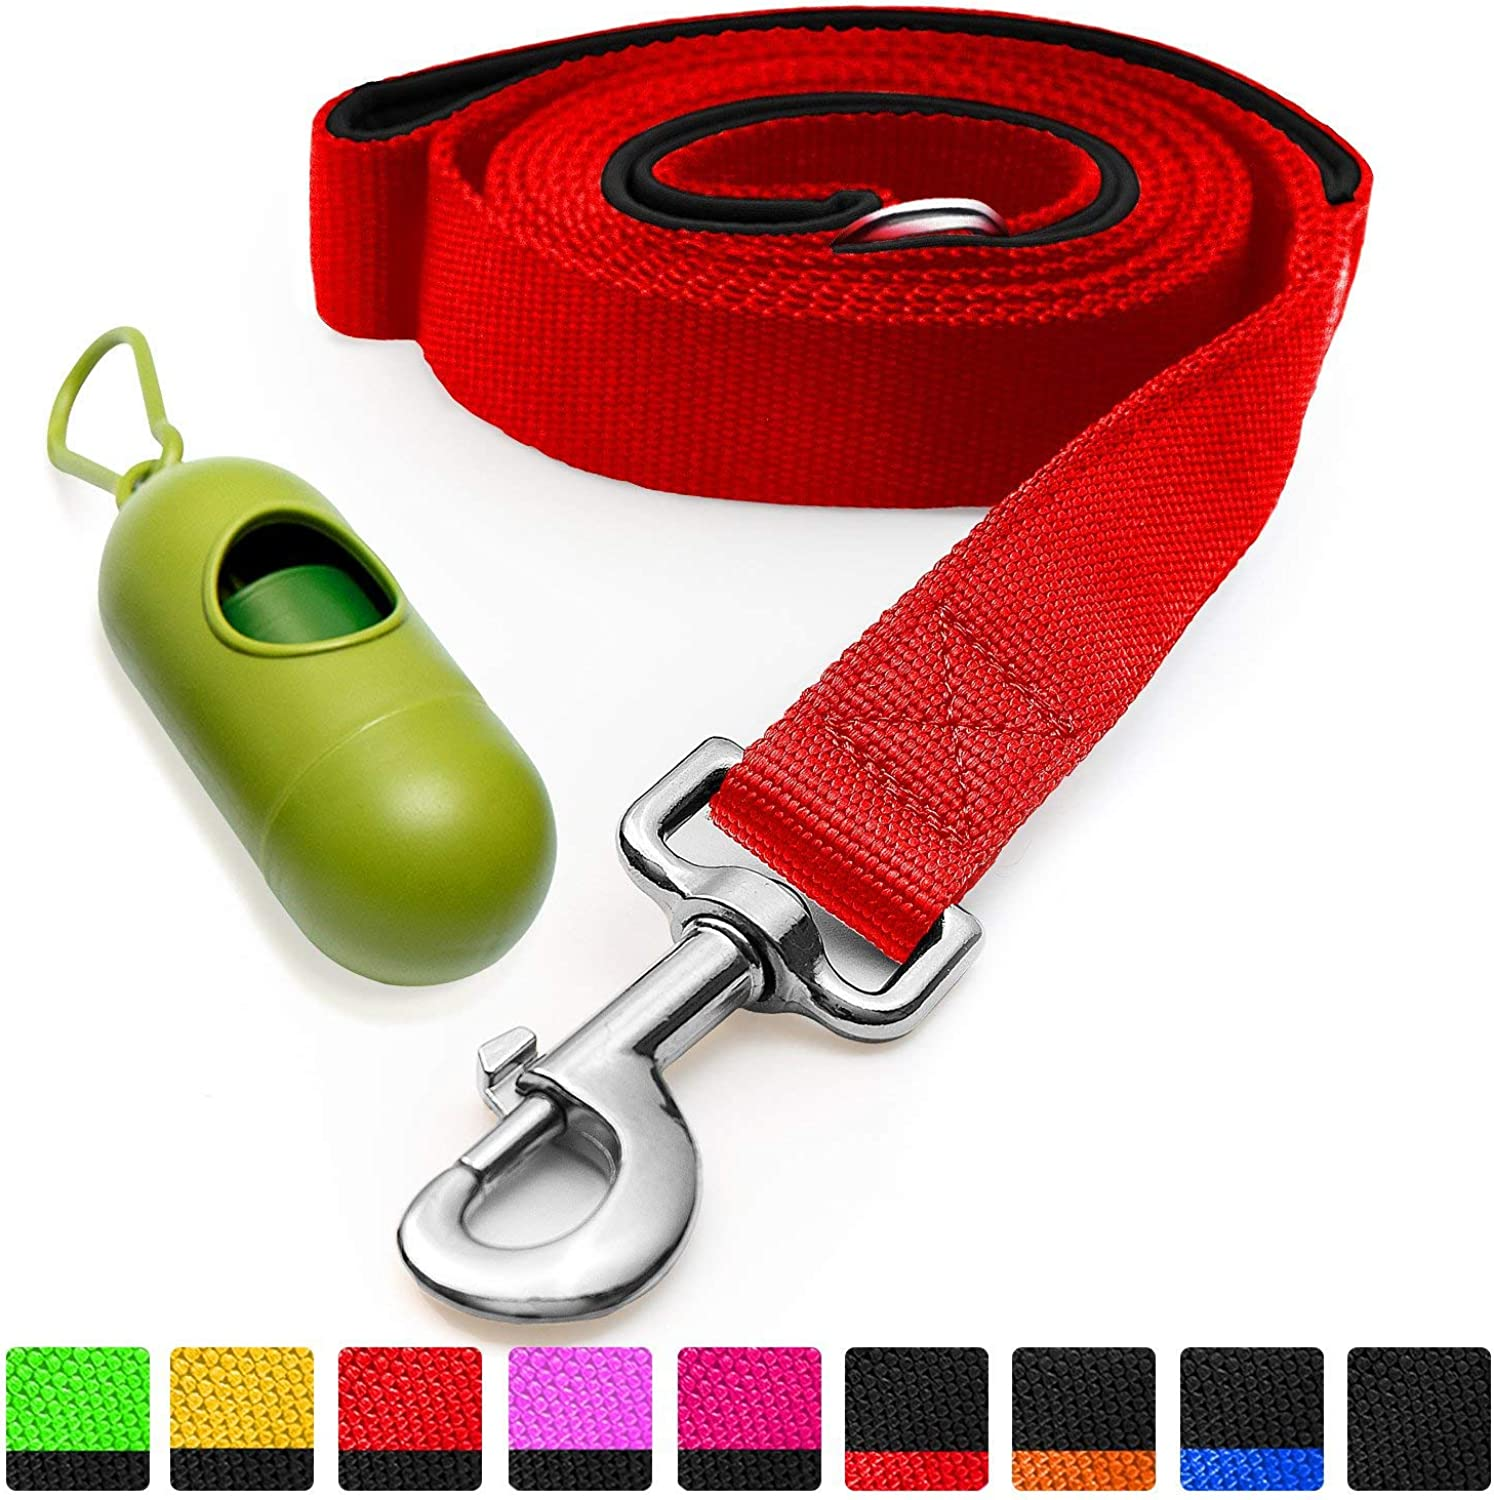 [Strong] Dog Leash with Bonus Free Waste Bag Dispenser  Thick Padded Dual Handles, Includes Poop Bags & 100% Nylon (6ft. Long)  Comfortable Grip  Ideal for Large, Medium and Small Dogs